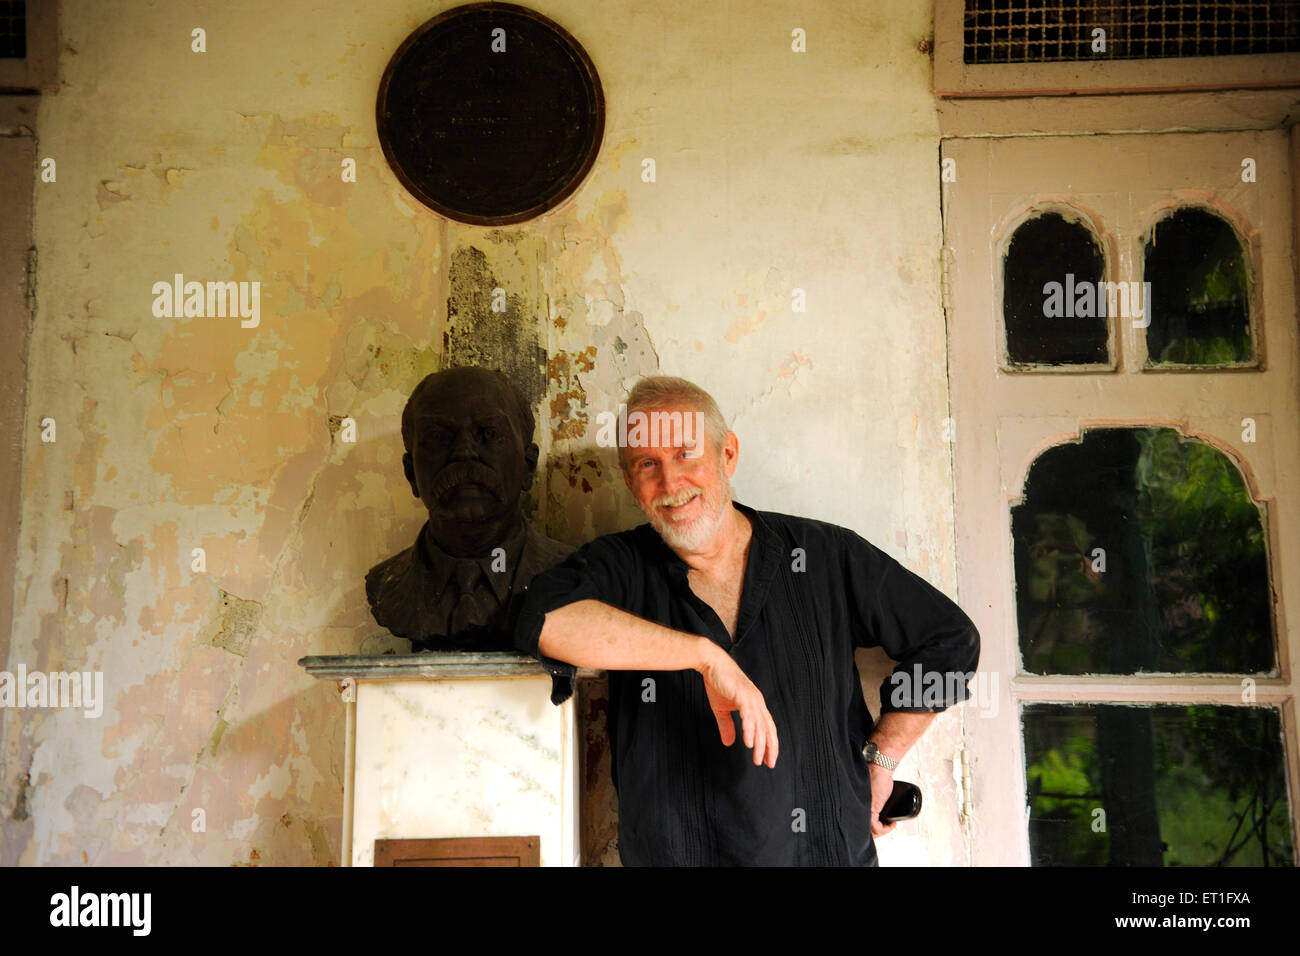 Actor Tom Alter ; India NO MR - Stock Image